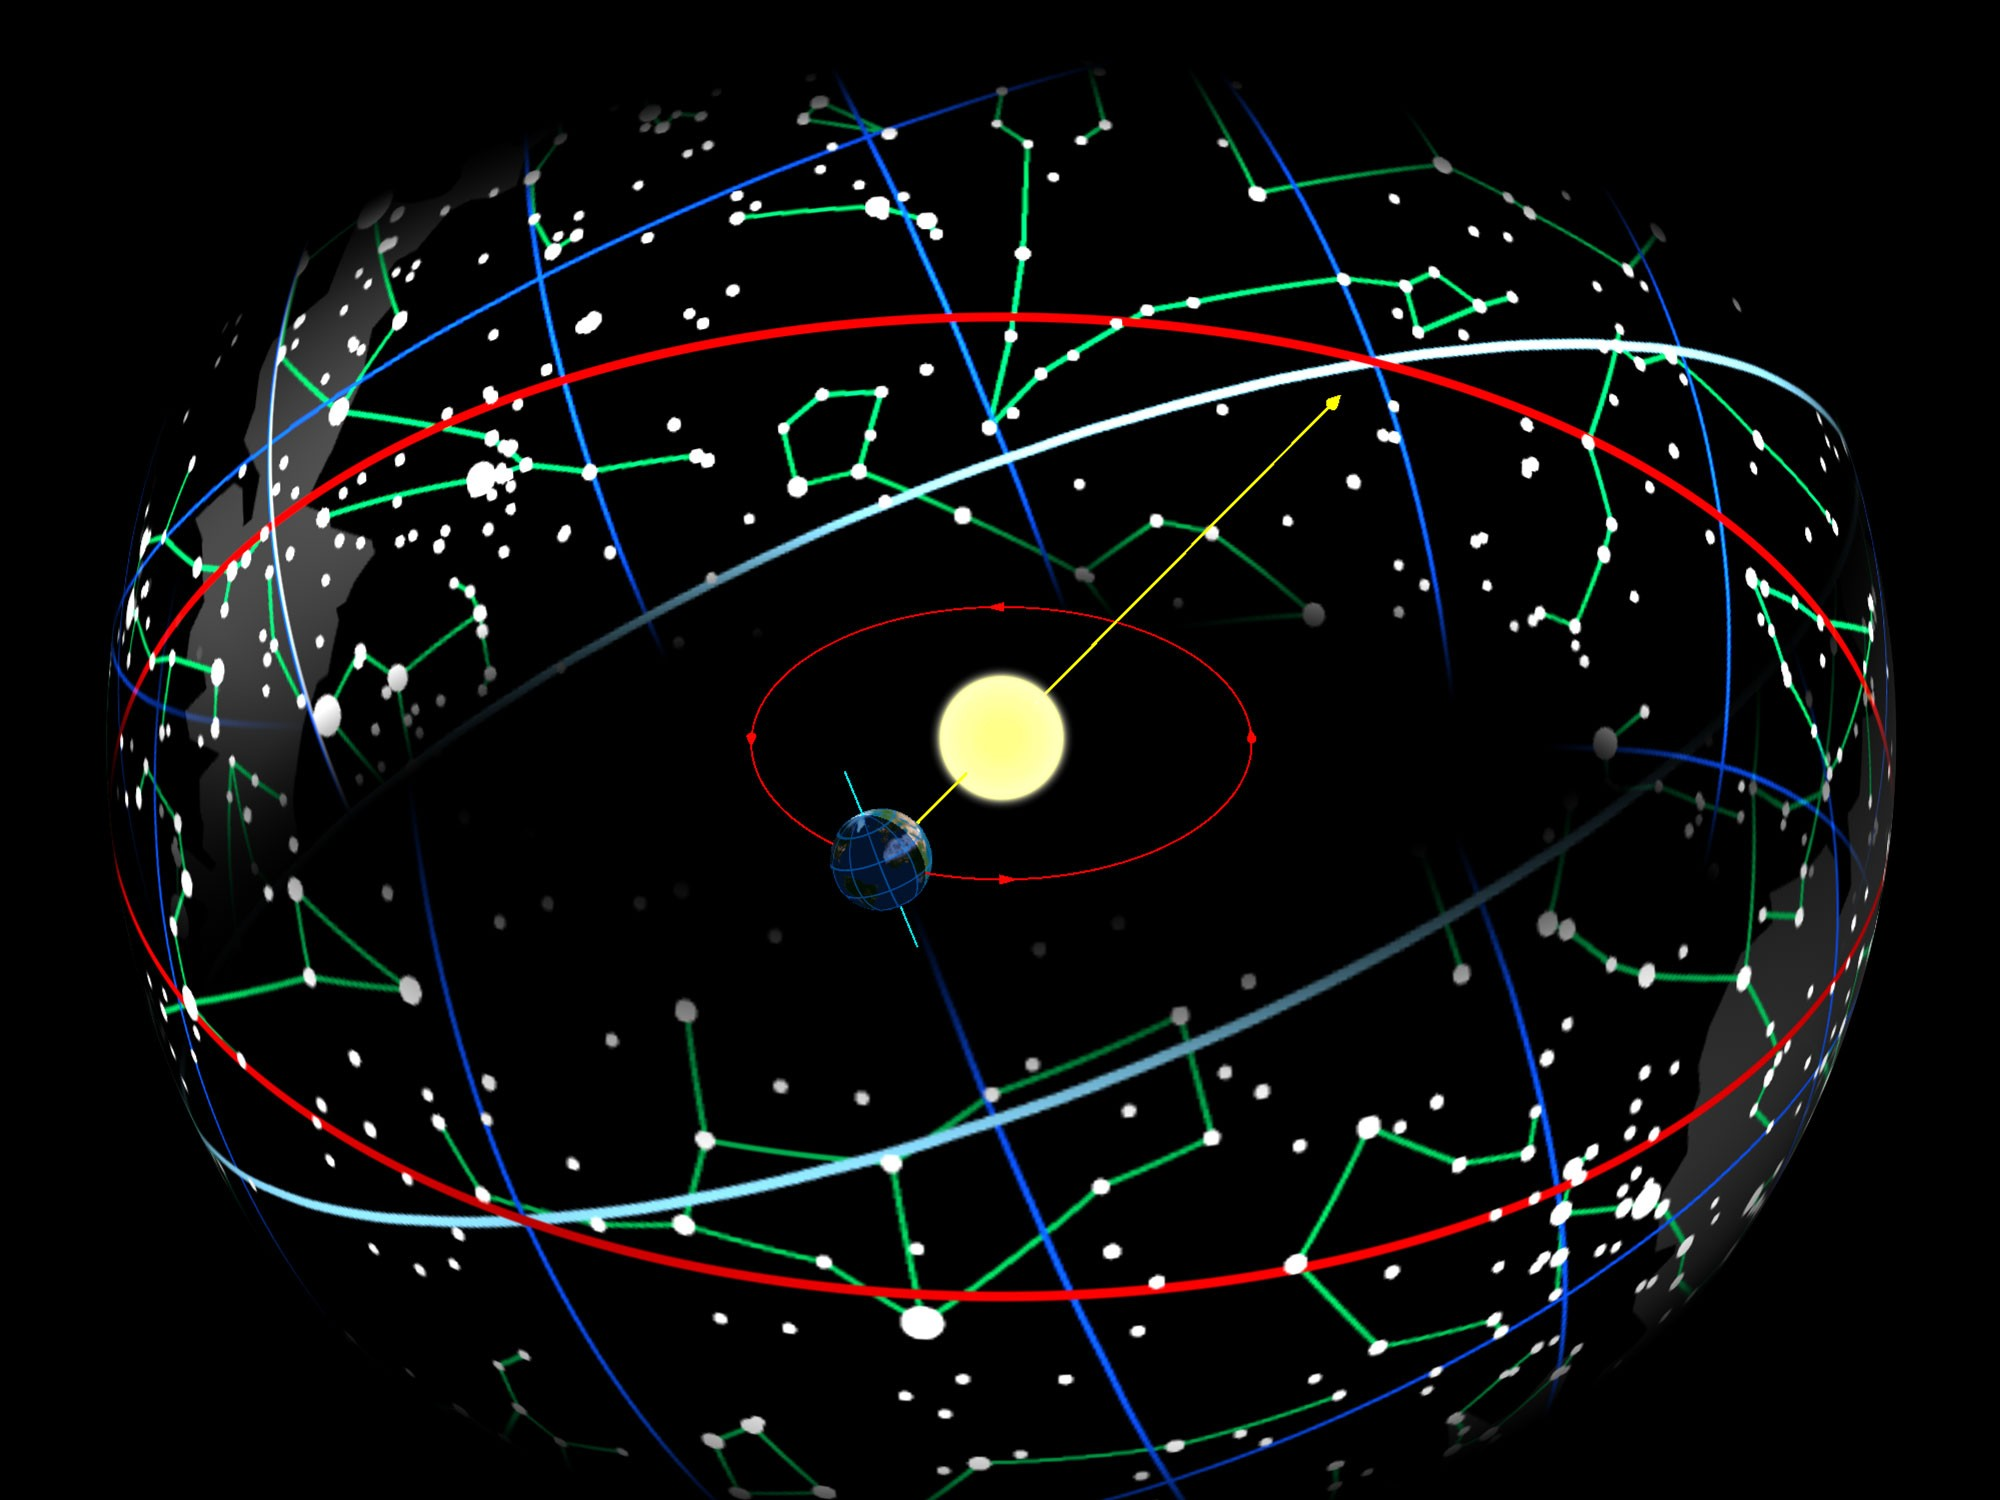 """Seen from Earth, the sun moves along the ecliptic (red). The intersection of the ecliptic and celestial equator (light blue) defines the vernal equinox, now """"in"""" Pisces. For the ancient Babylonians, it was in Aries. - TAU'OLUNGA/GNU FREE DOCUMENTATION LICENSE"""